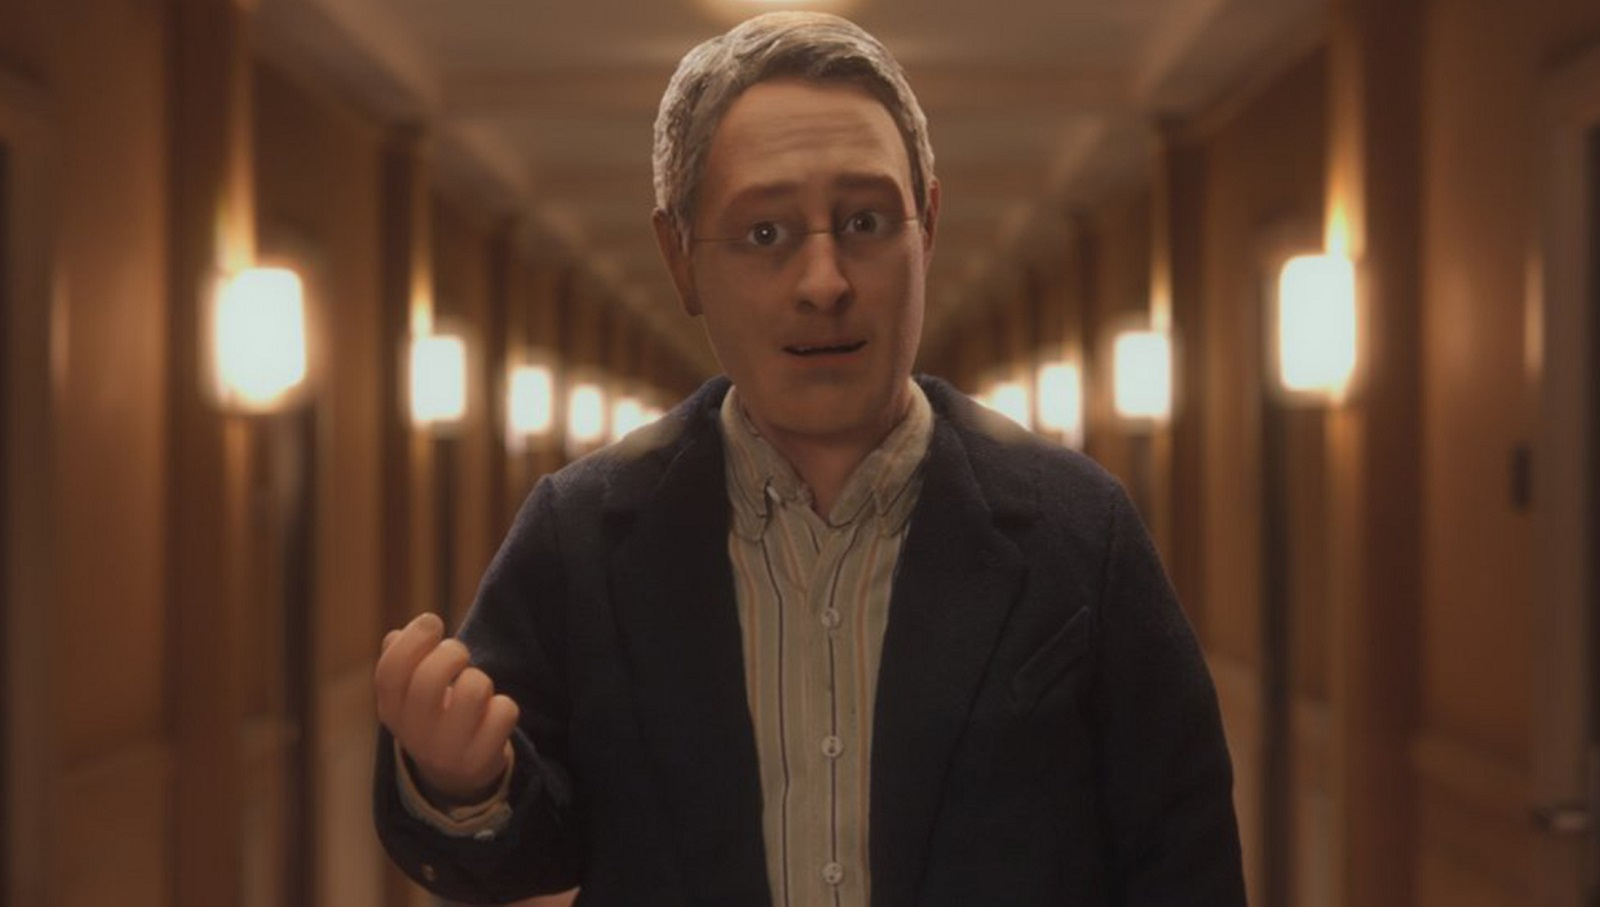 David Thewlis does the voice for Michael Stone in 'Anomalisa.' (Photo courtesy Paramount Pictures/TNS)